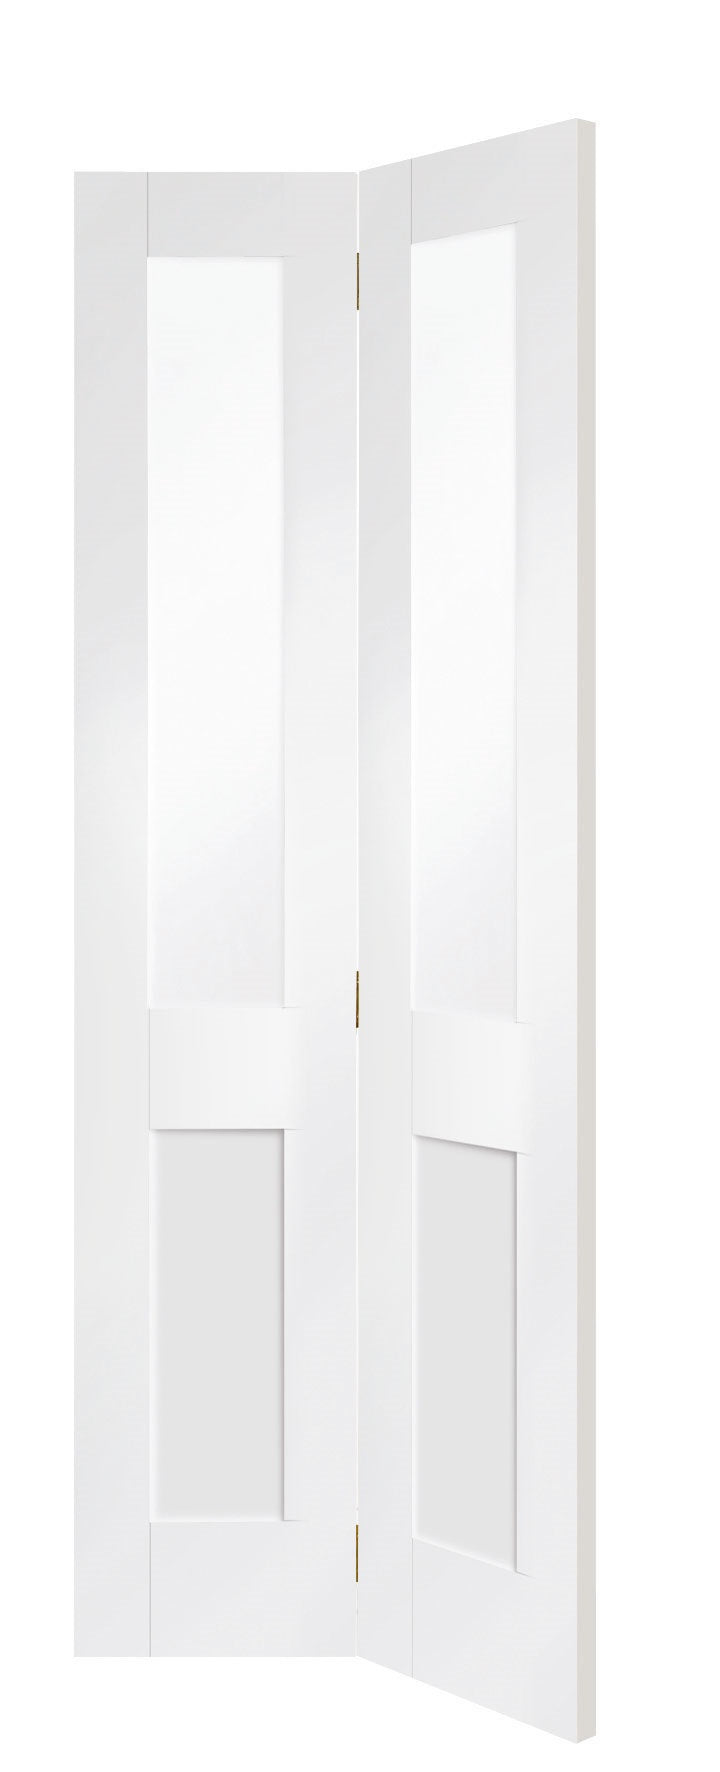 Marston Clear Glass room divider,  5 Leaf White Prefinished